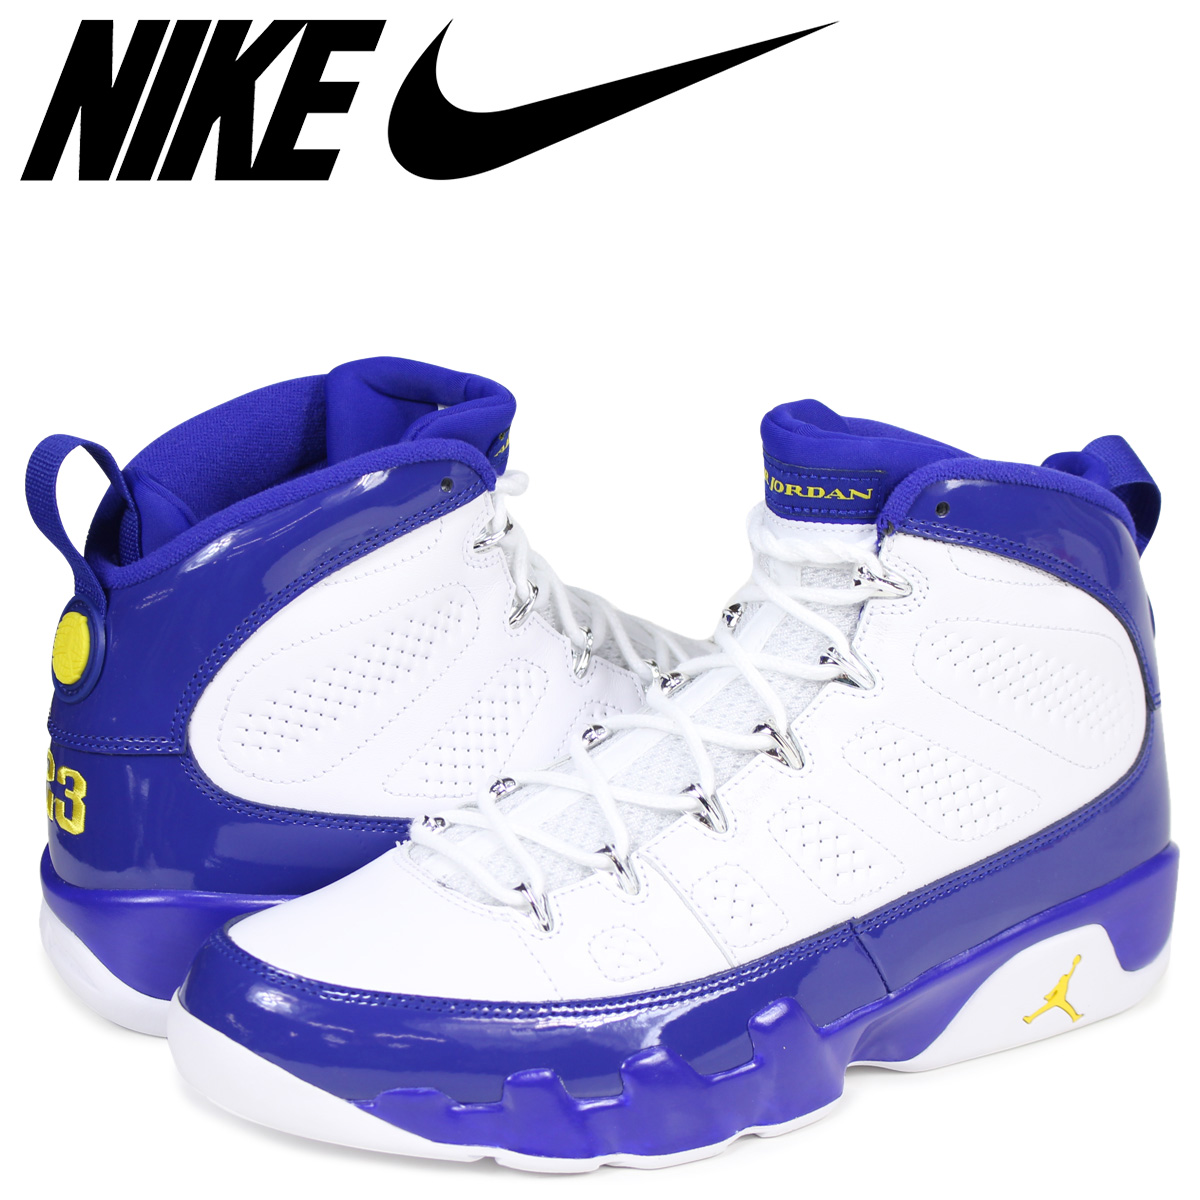 82d508141dd9 Whats up Sports  NIKE AIR JORDAN 9 RETRO KOBE Nike Air Jordan 9 ...